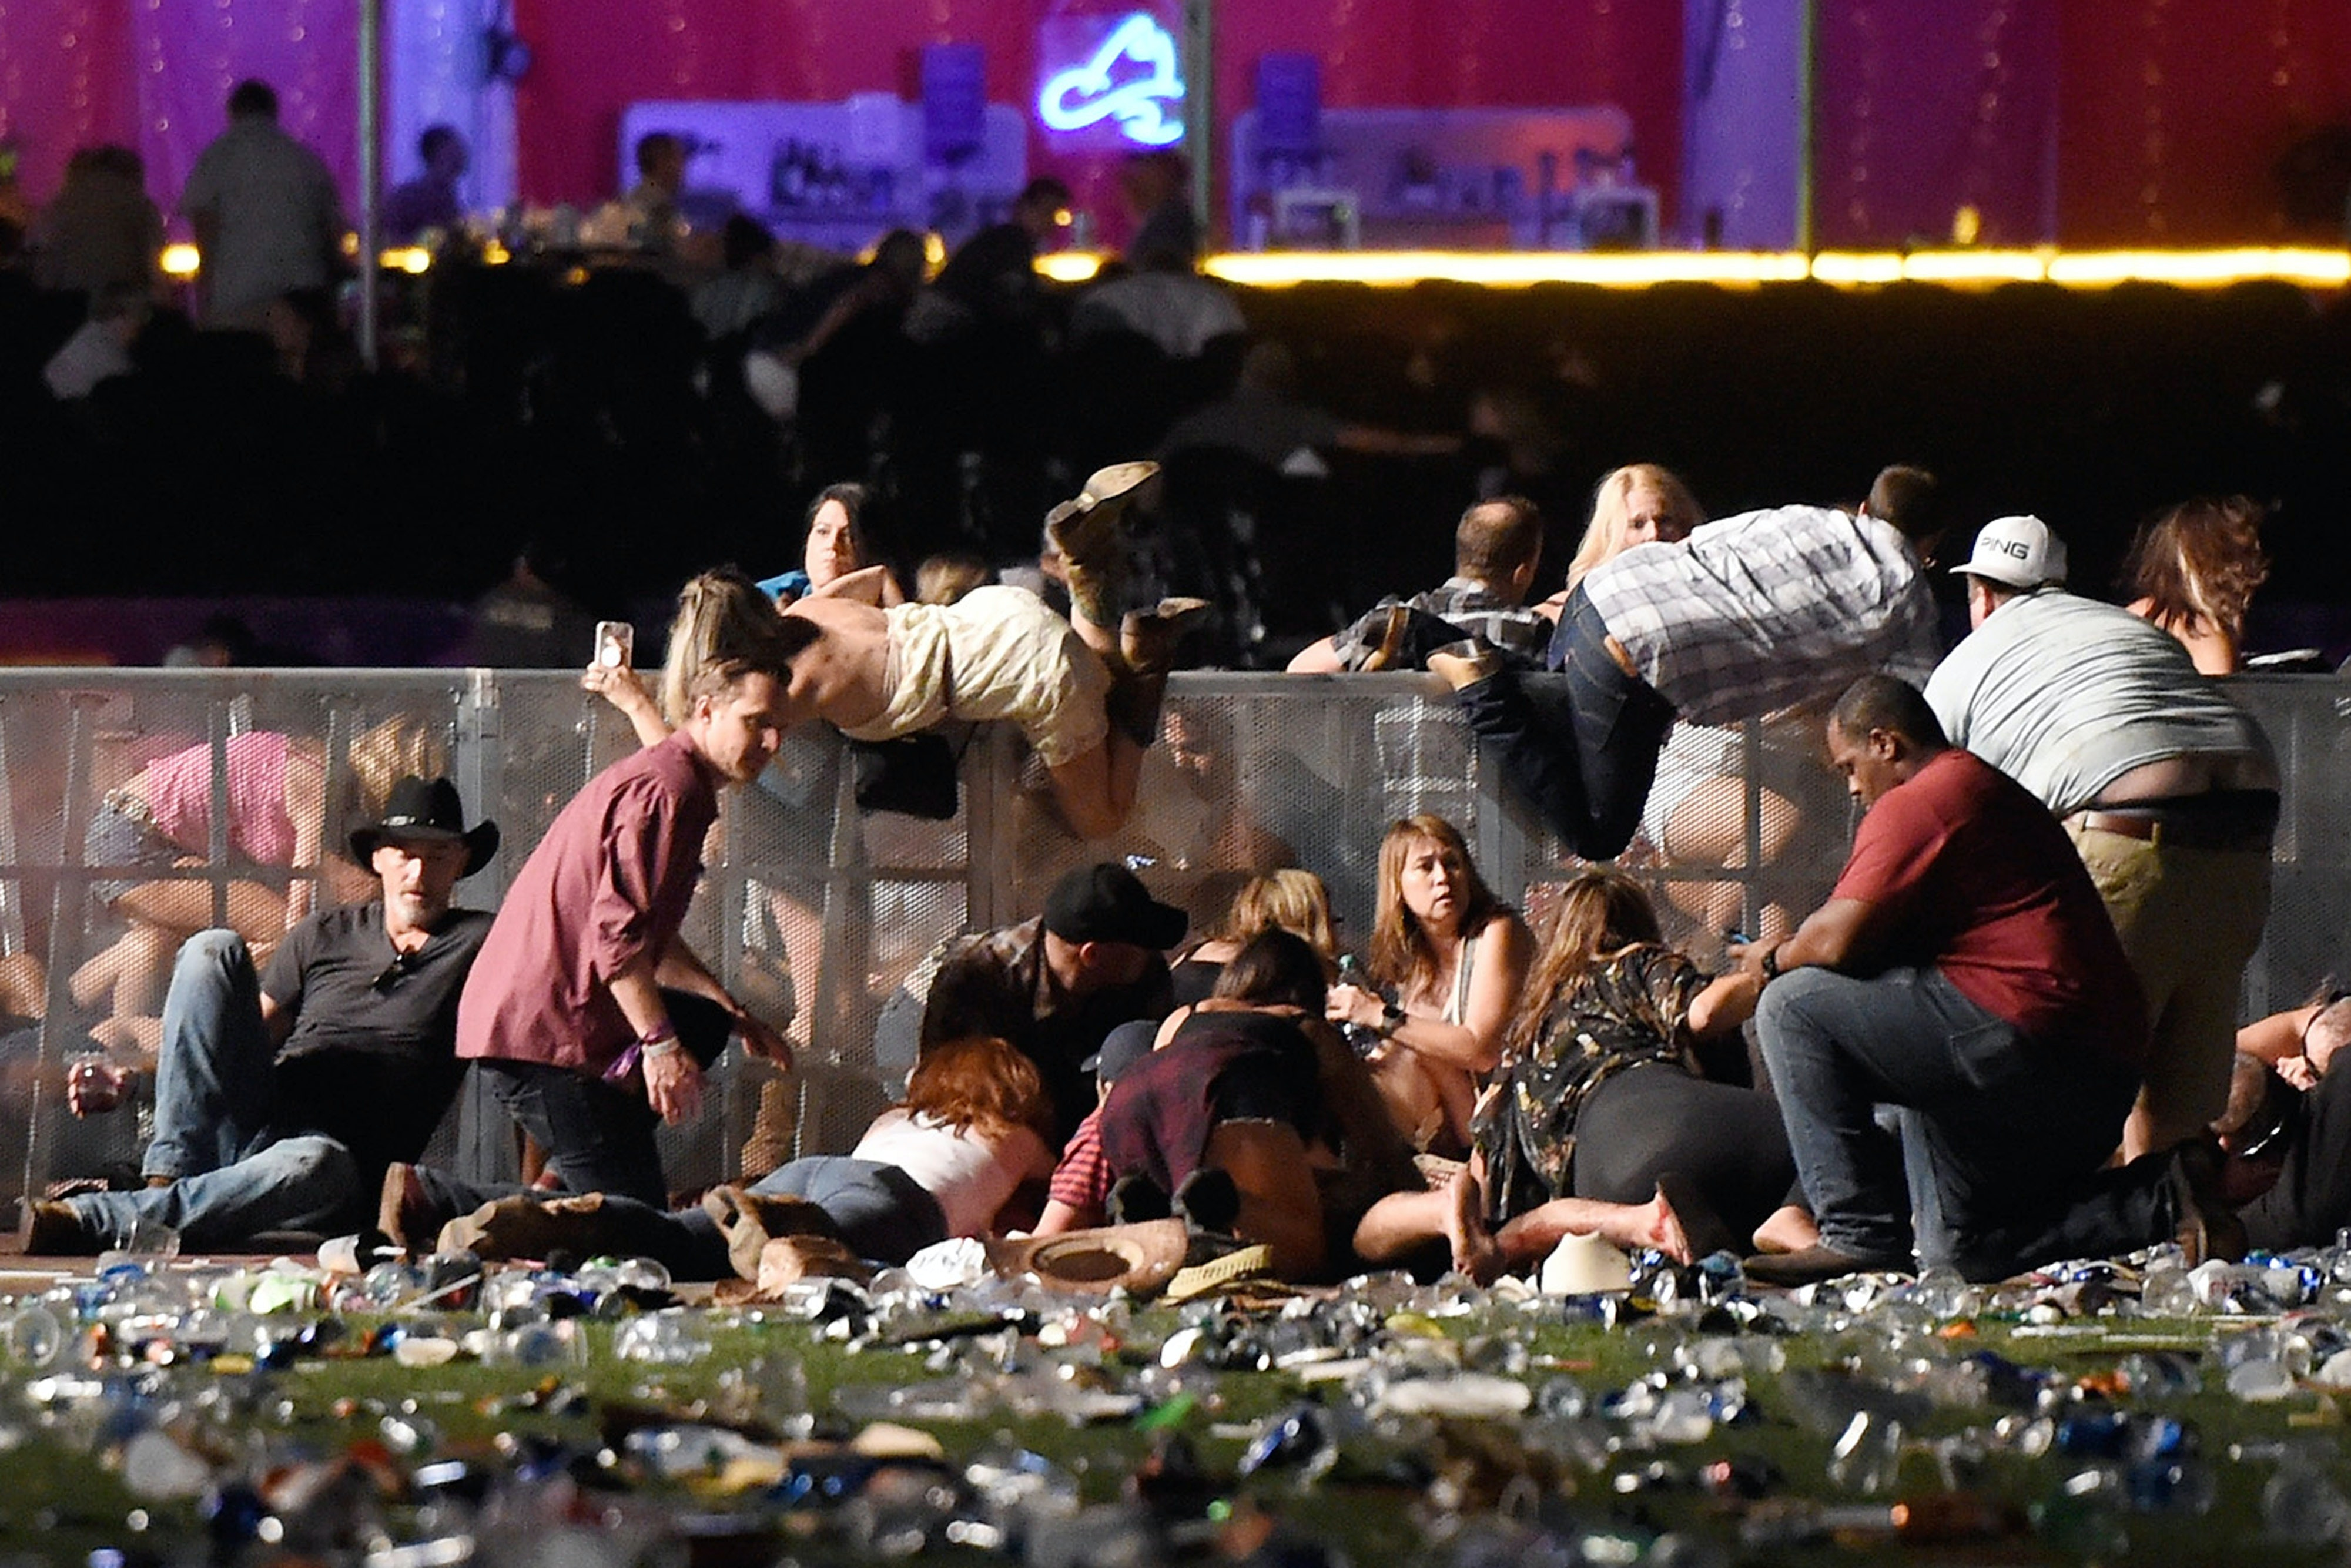 Why ISIS claims responsibility for attacks it didn't commit